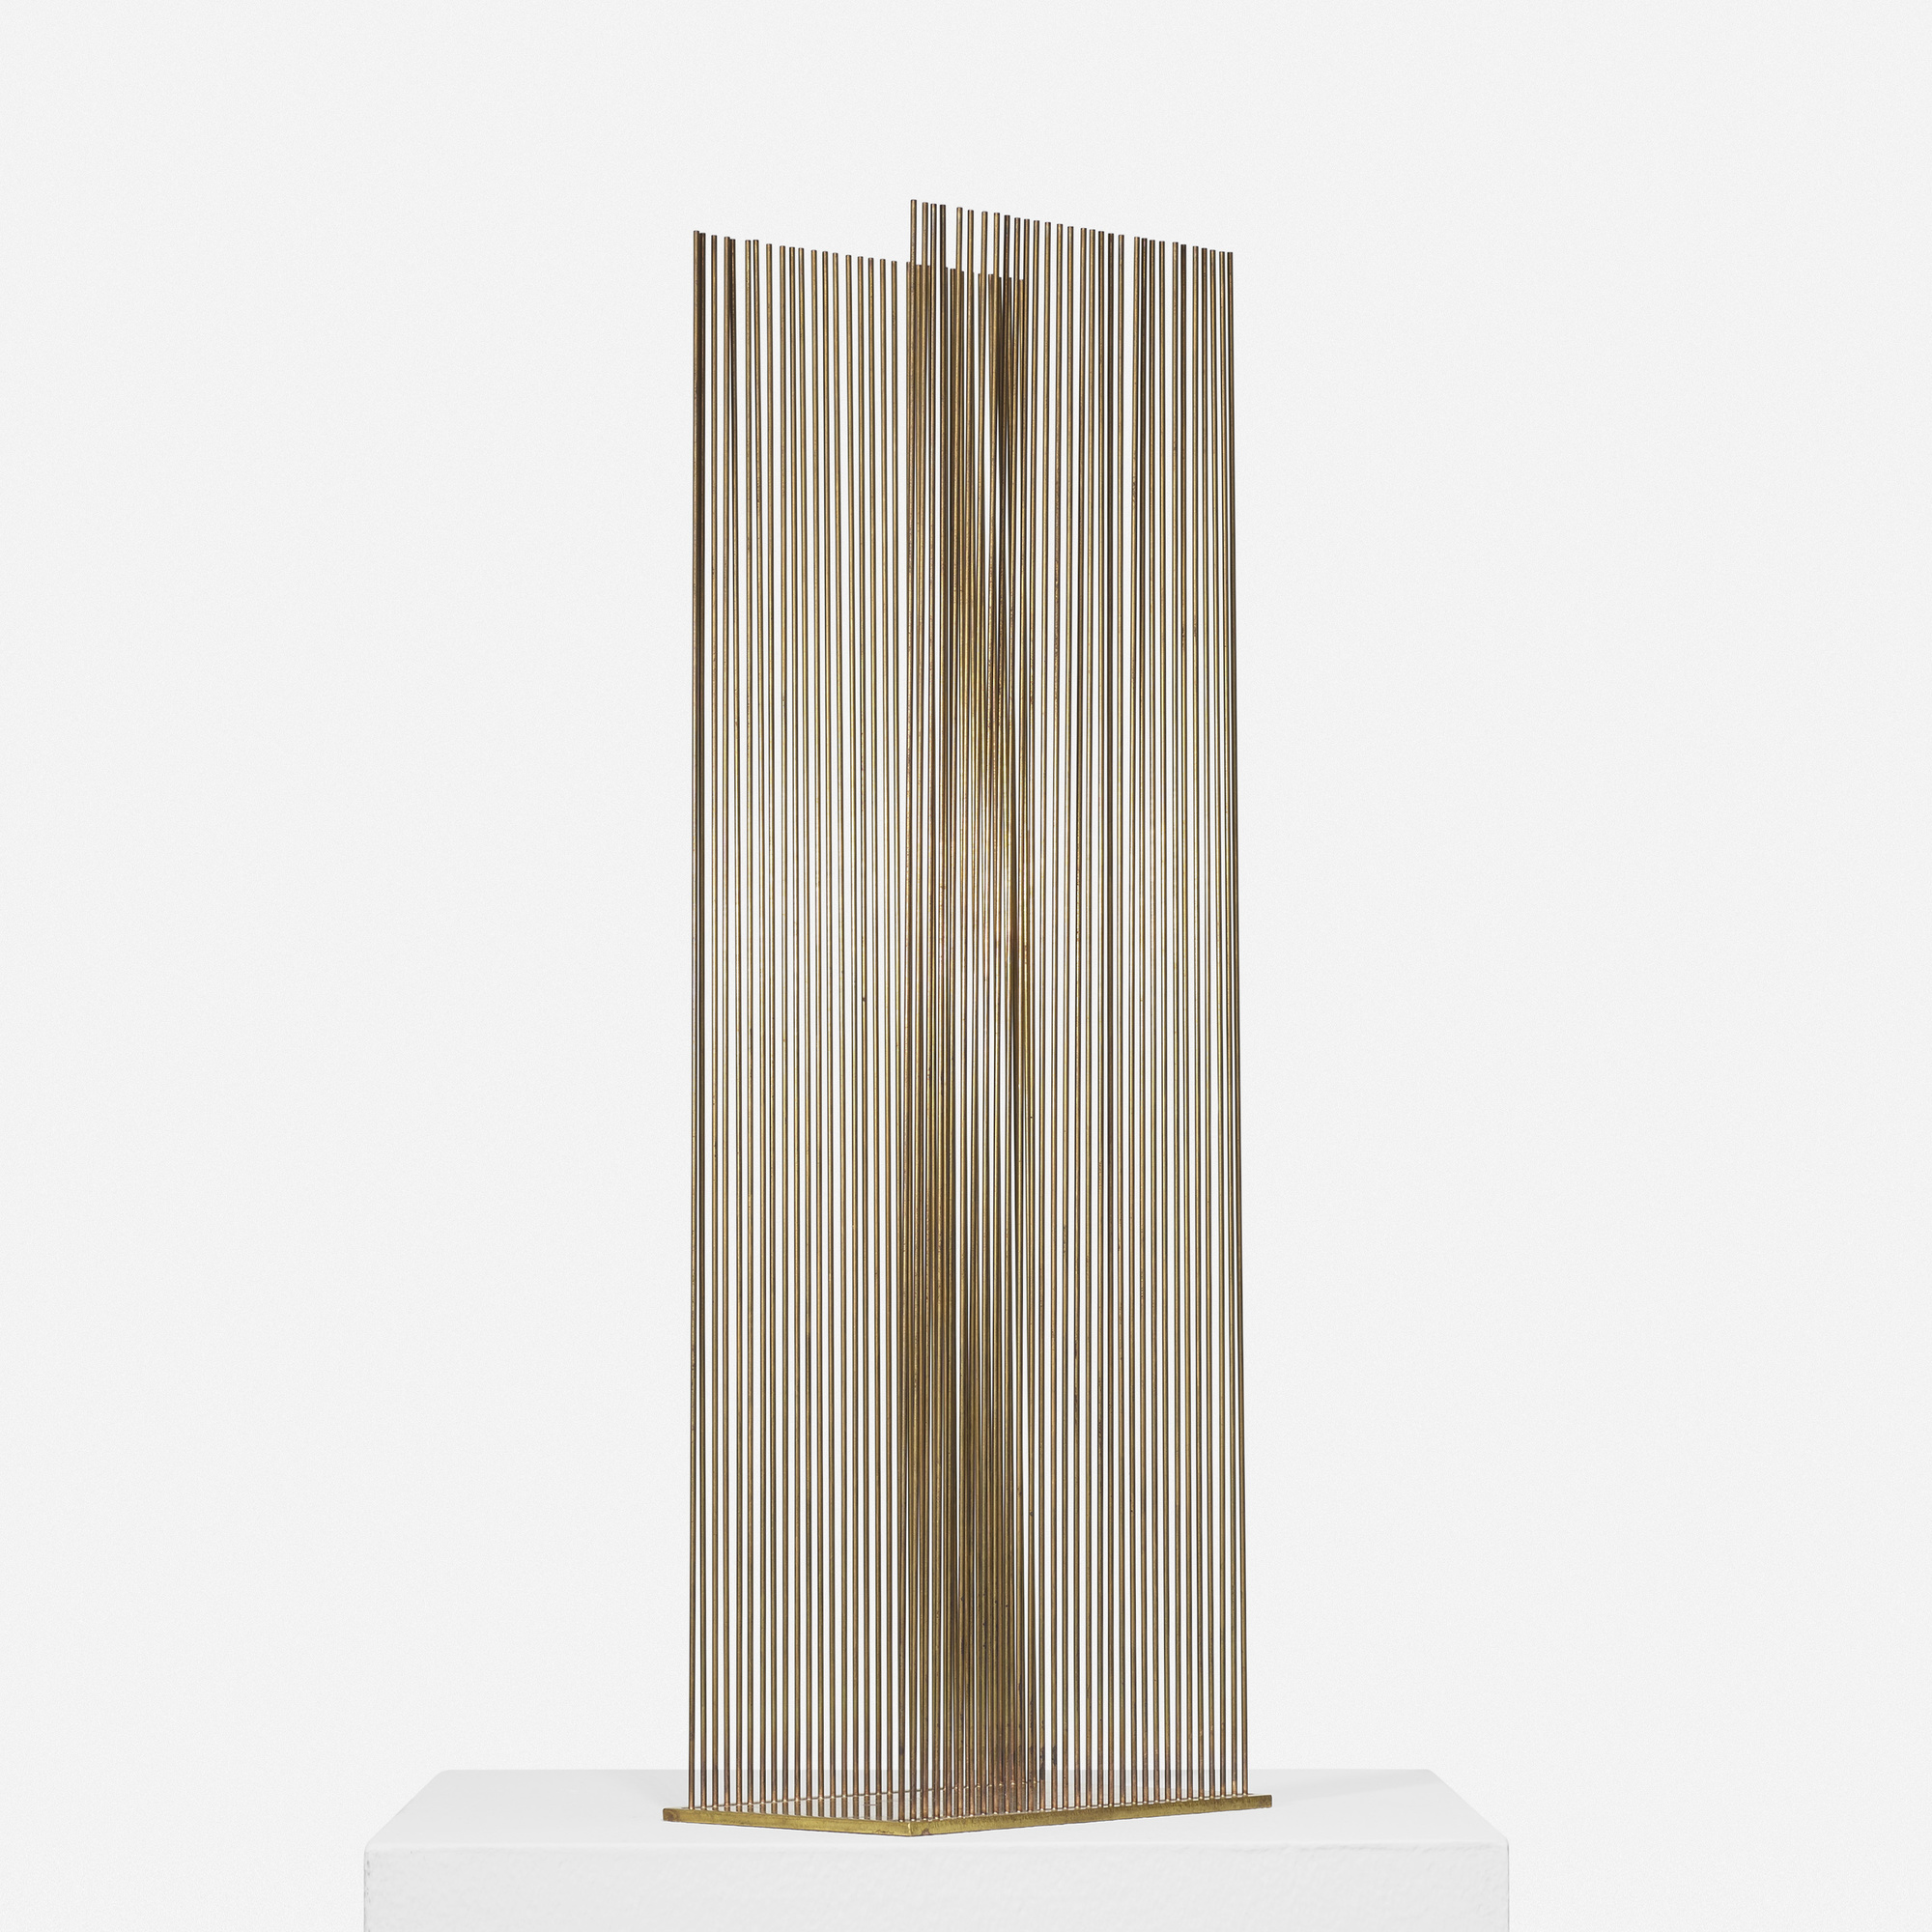 134: Harry Bertoia / Untitled (Sonambient) from the Standard Oil Commission (1 of 4)